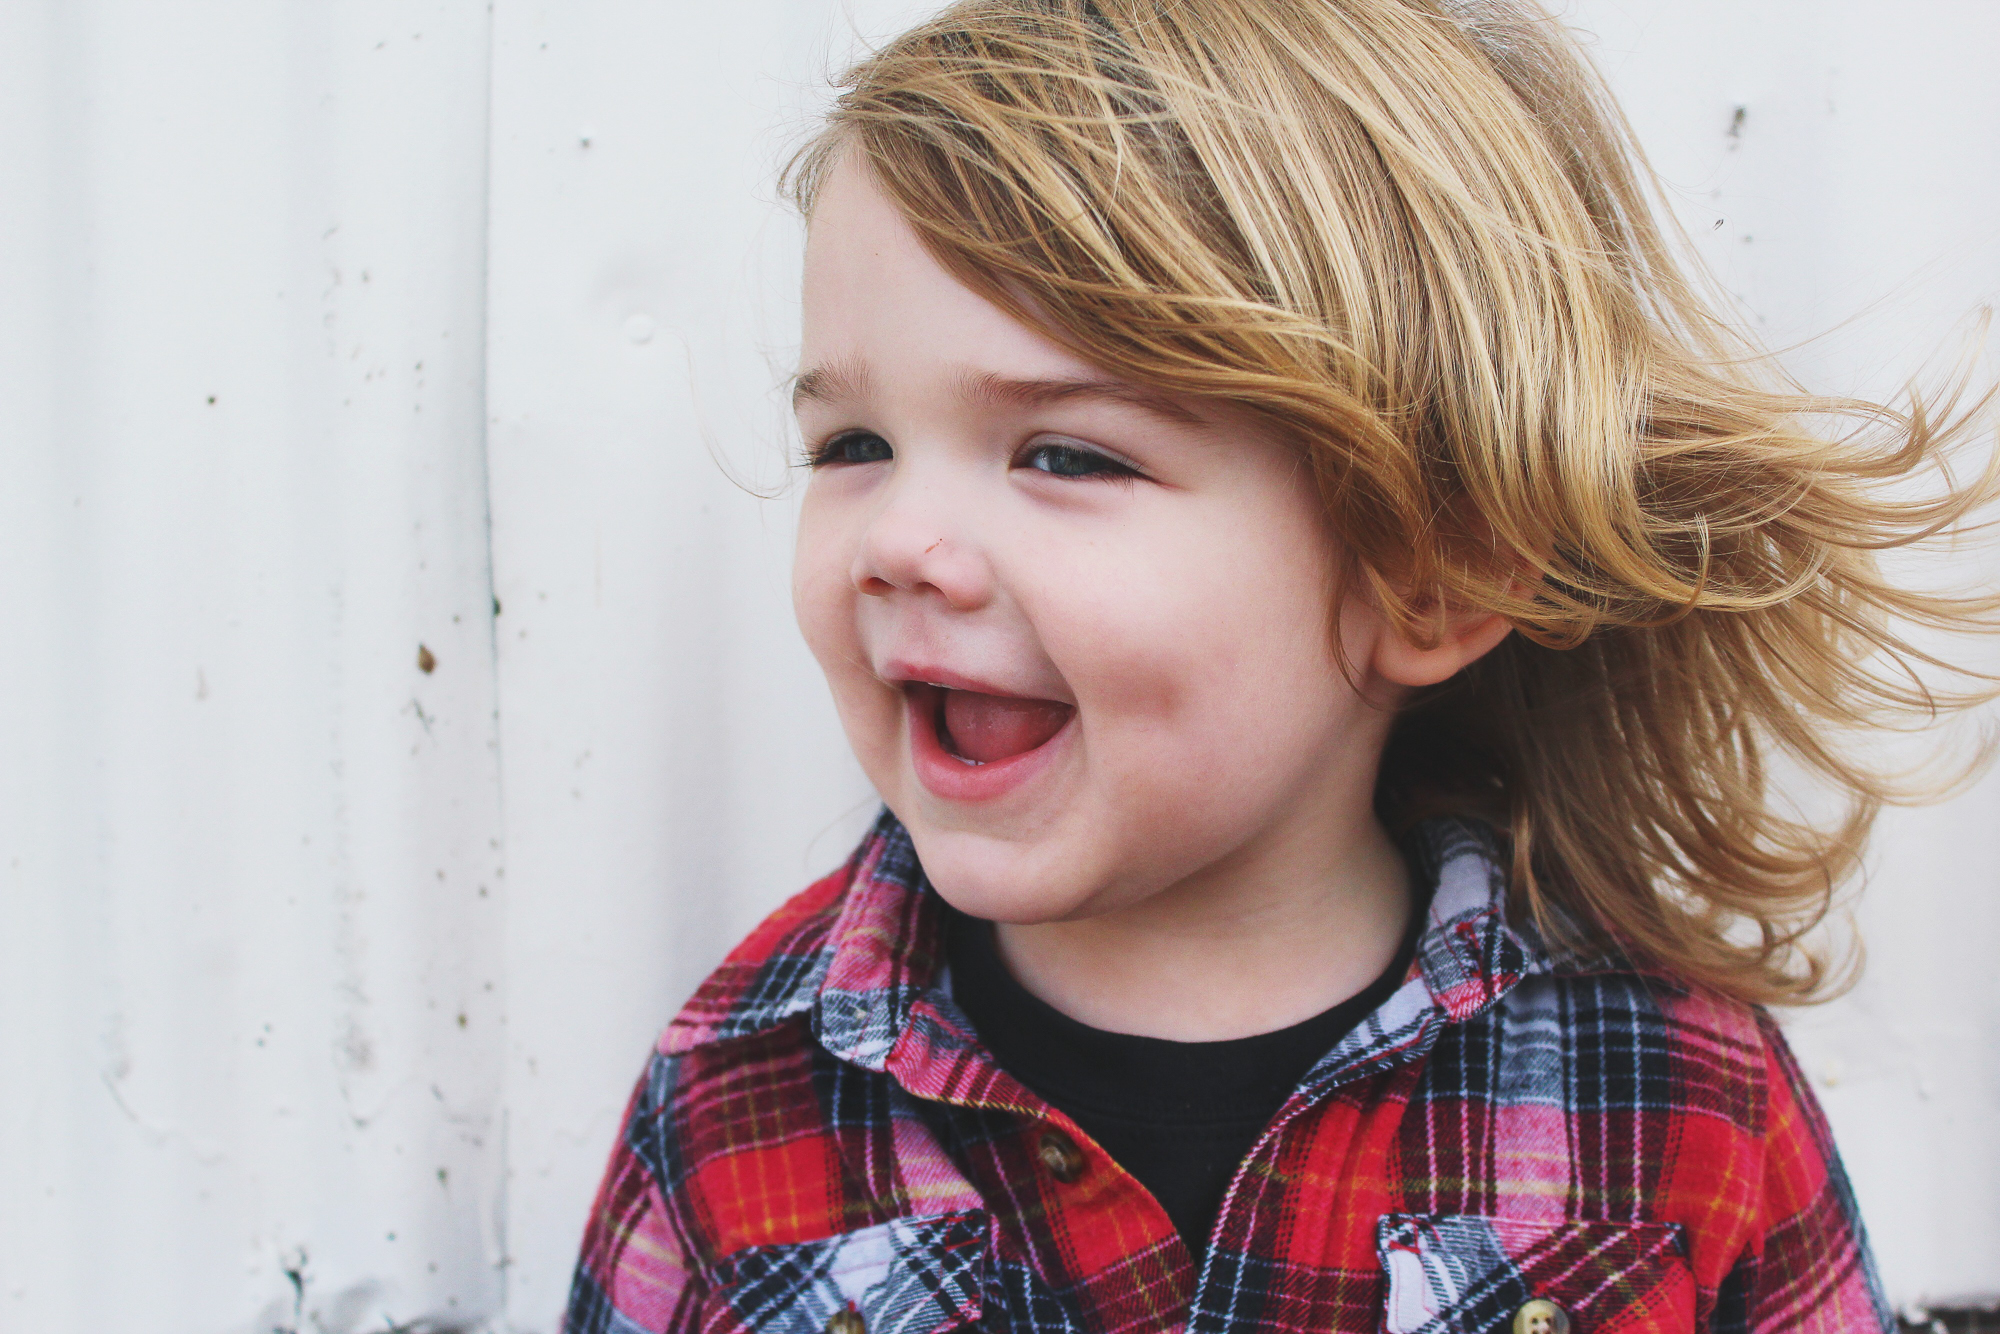 12 Toddler Boy Haircuts For Cute & Stylish Little Guys